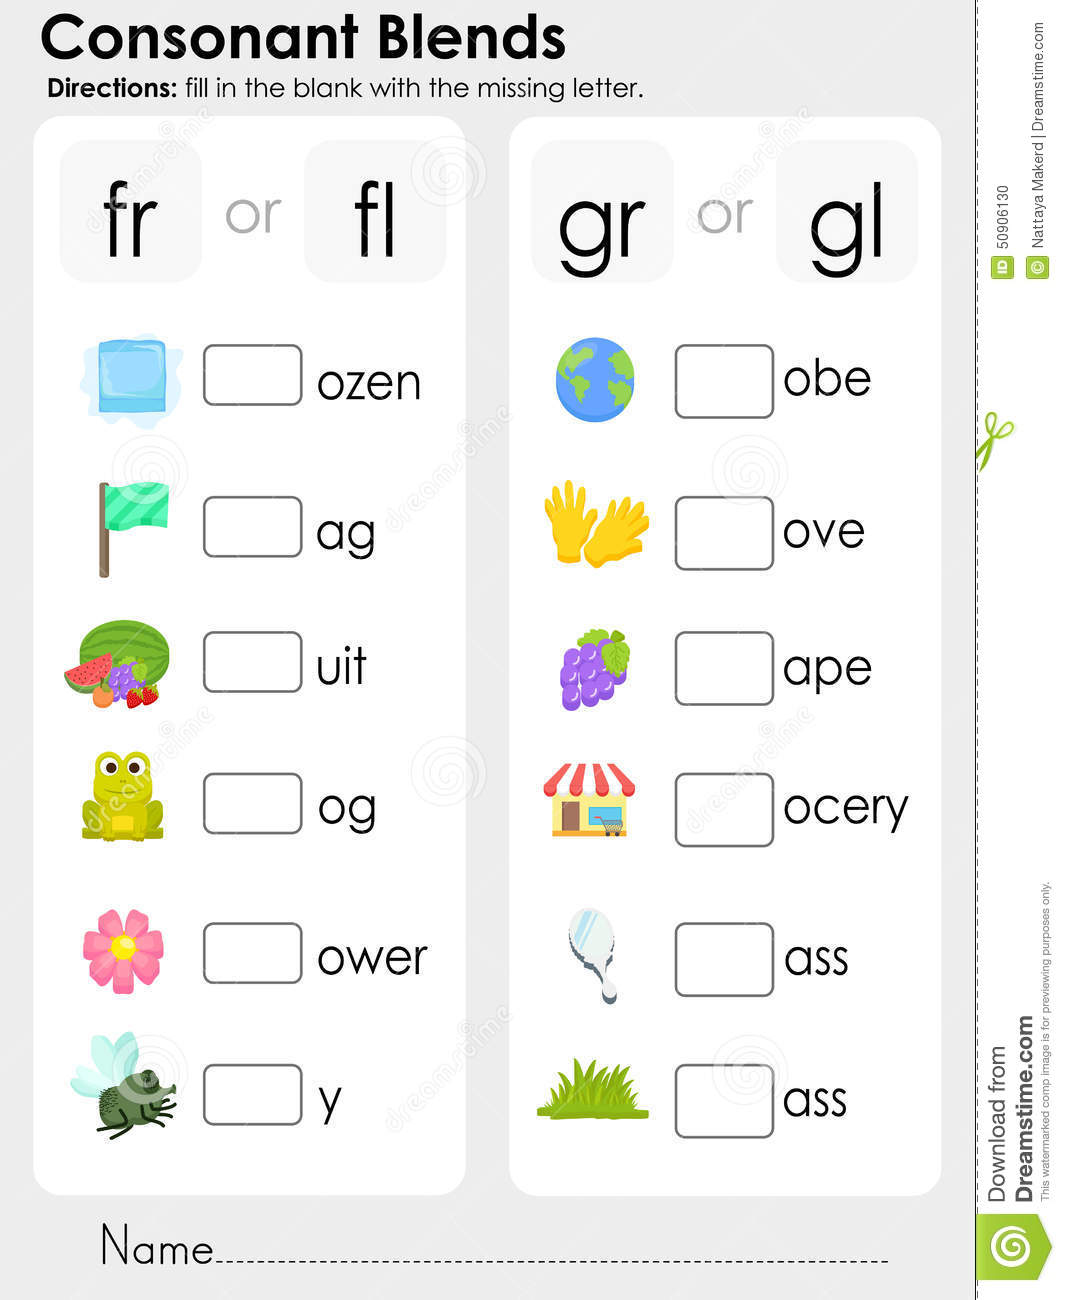 Classy Worksheets For Initial Blends About Beginning Consonant